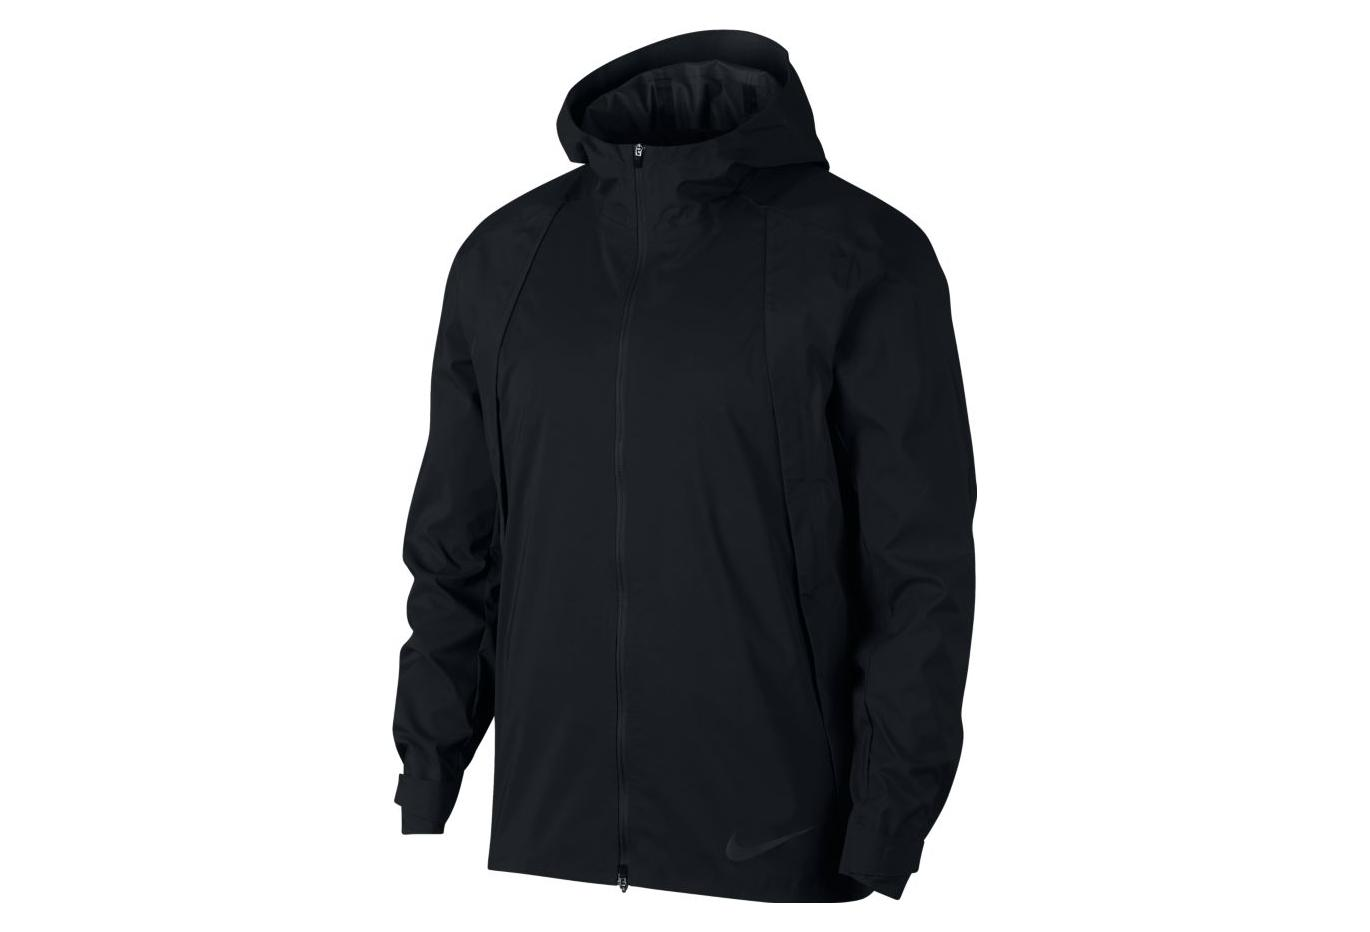 Nike Zonal AeroShield Water Repellent Jacket Black